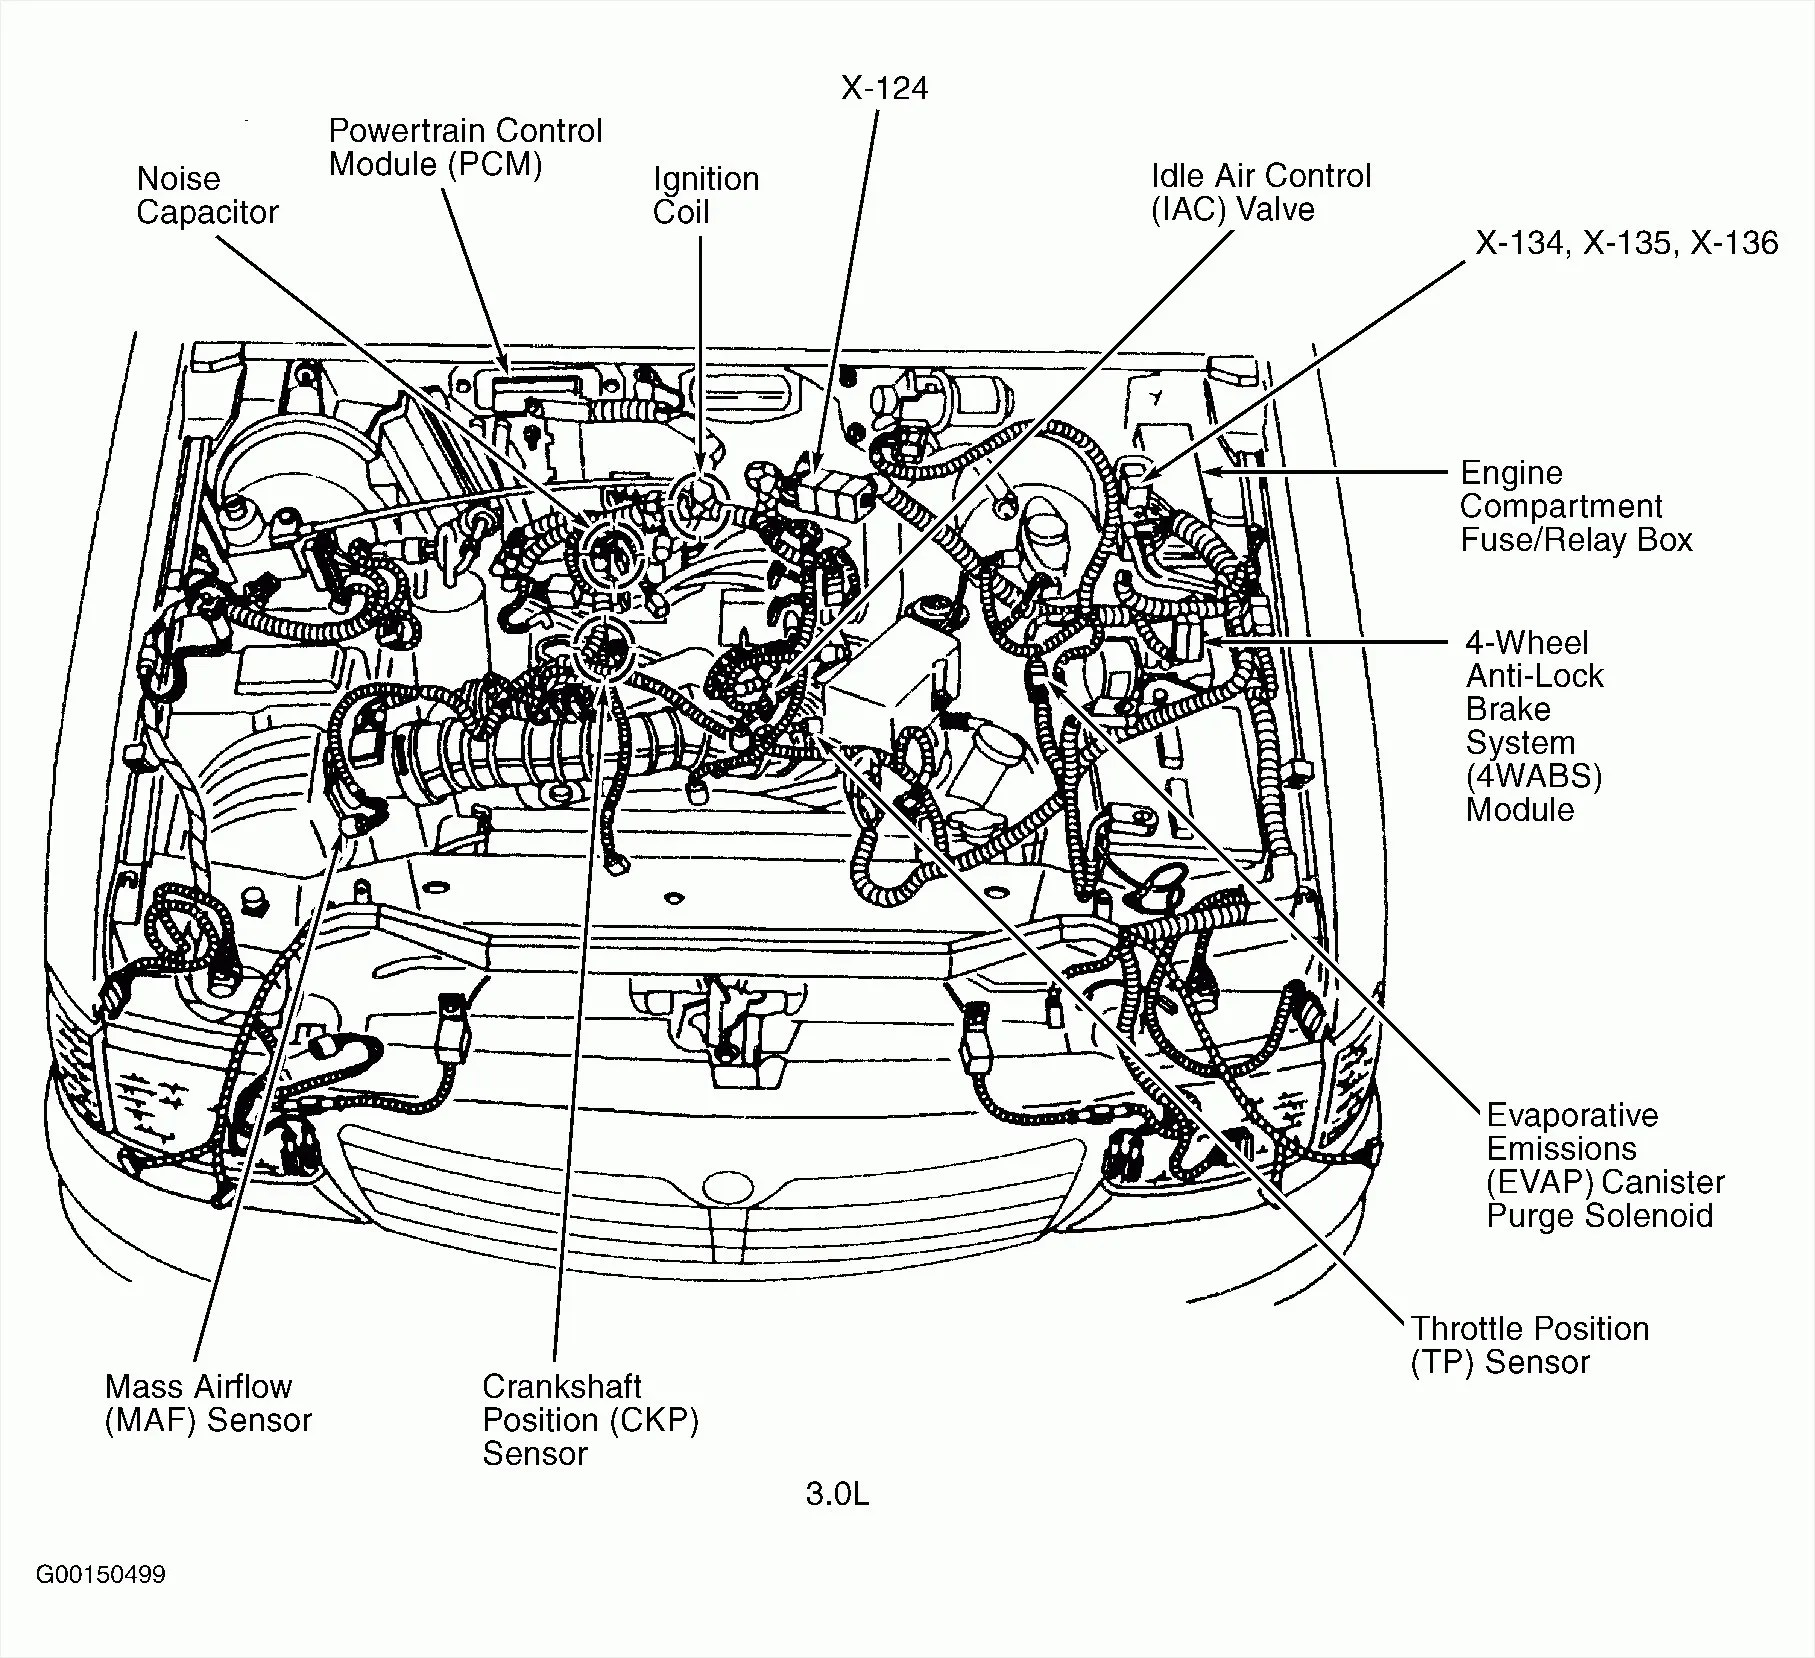 hight resolution of 2011 ford fusion engine compartment diagram wiring diagram insideford escape engine compartment diagram wiring diagram inside